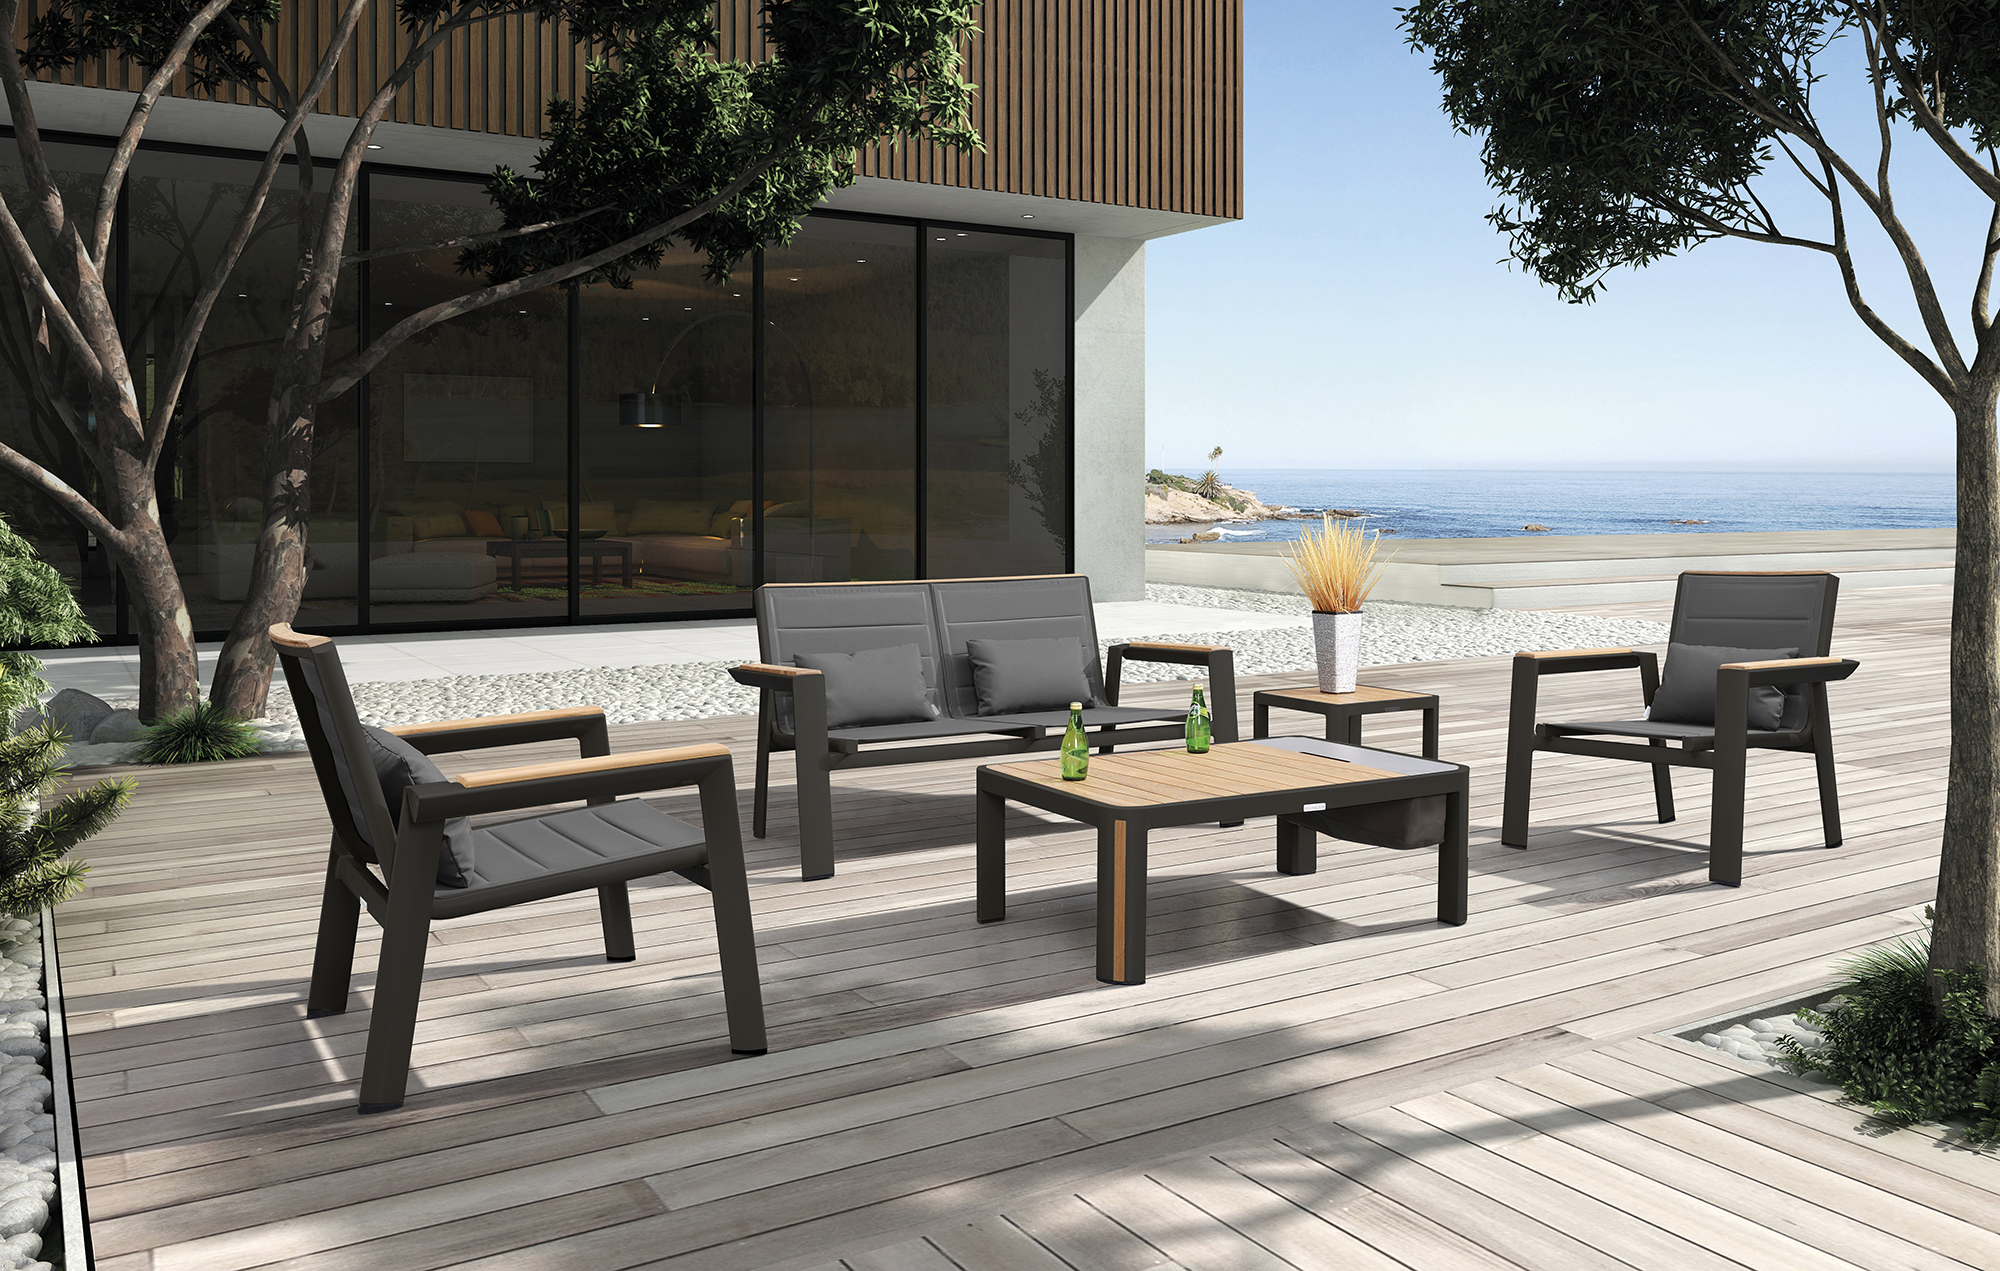 The Geneva Collections combines the contemporary clean lines of crisp powder coated aluminum with fine quality warm teak wood inserts and accents to create beautiful stylish furniture. The furniture is uniquely comfortable resulting from the use of padded textilene in the chairs and loungers. Two Geneva lounge chairs, Geneva loveseat and Geneva coffee table with built in ice bucket.